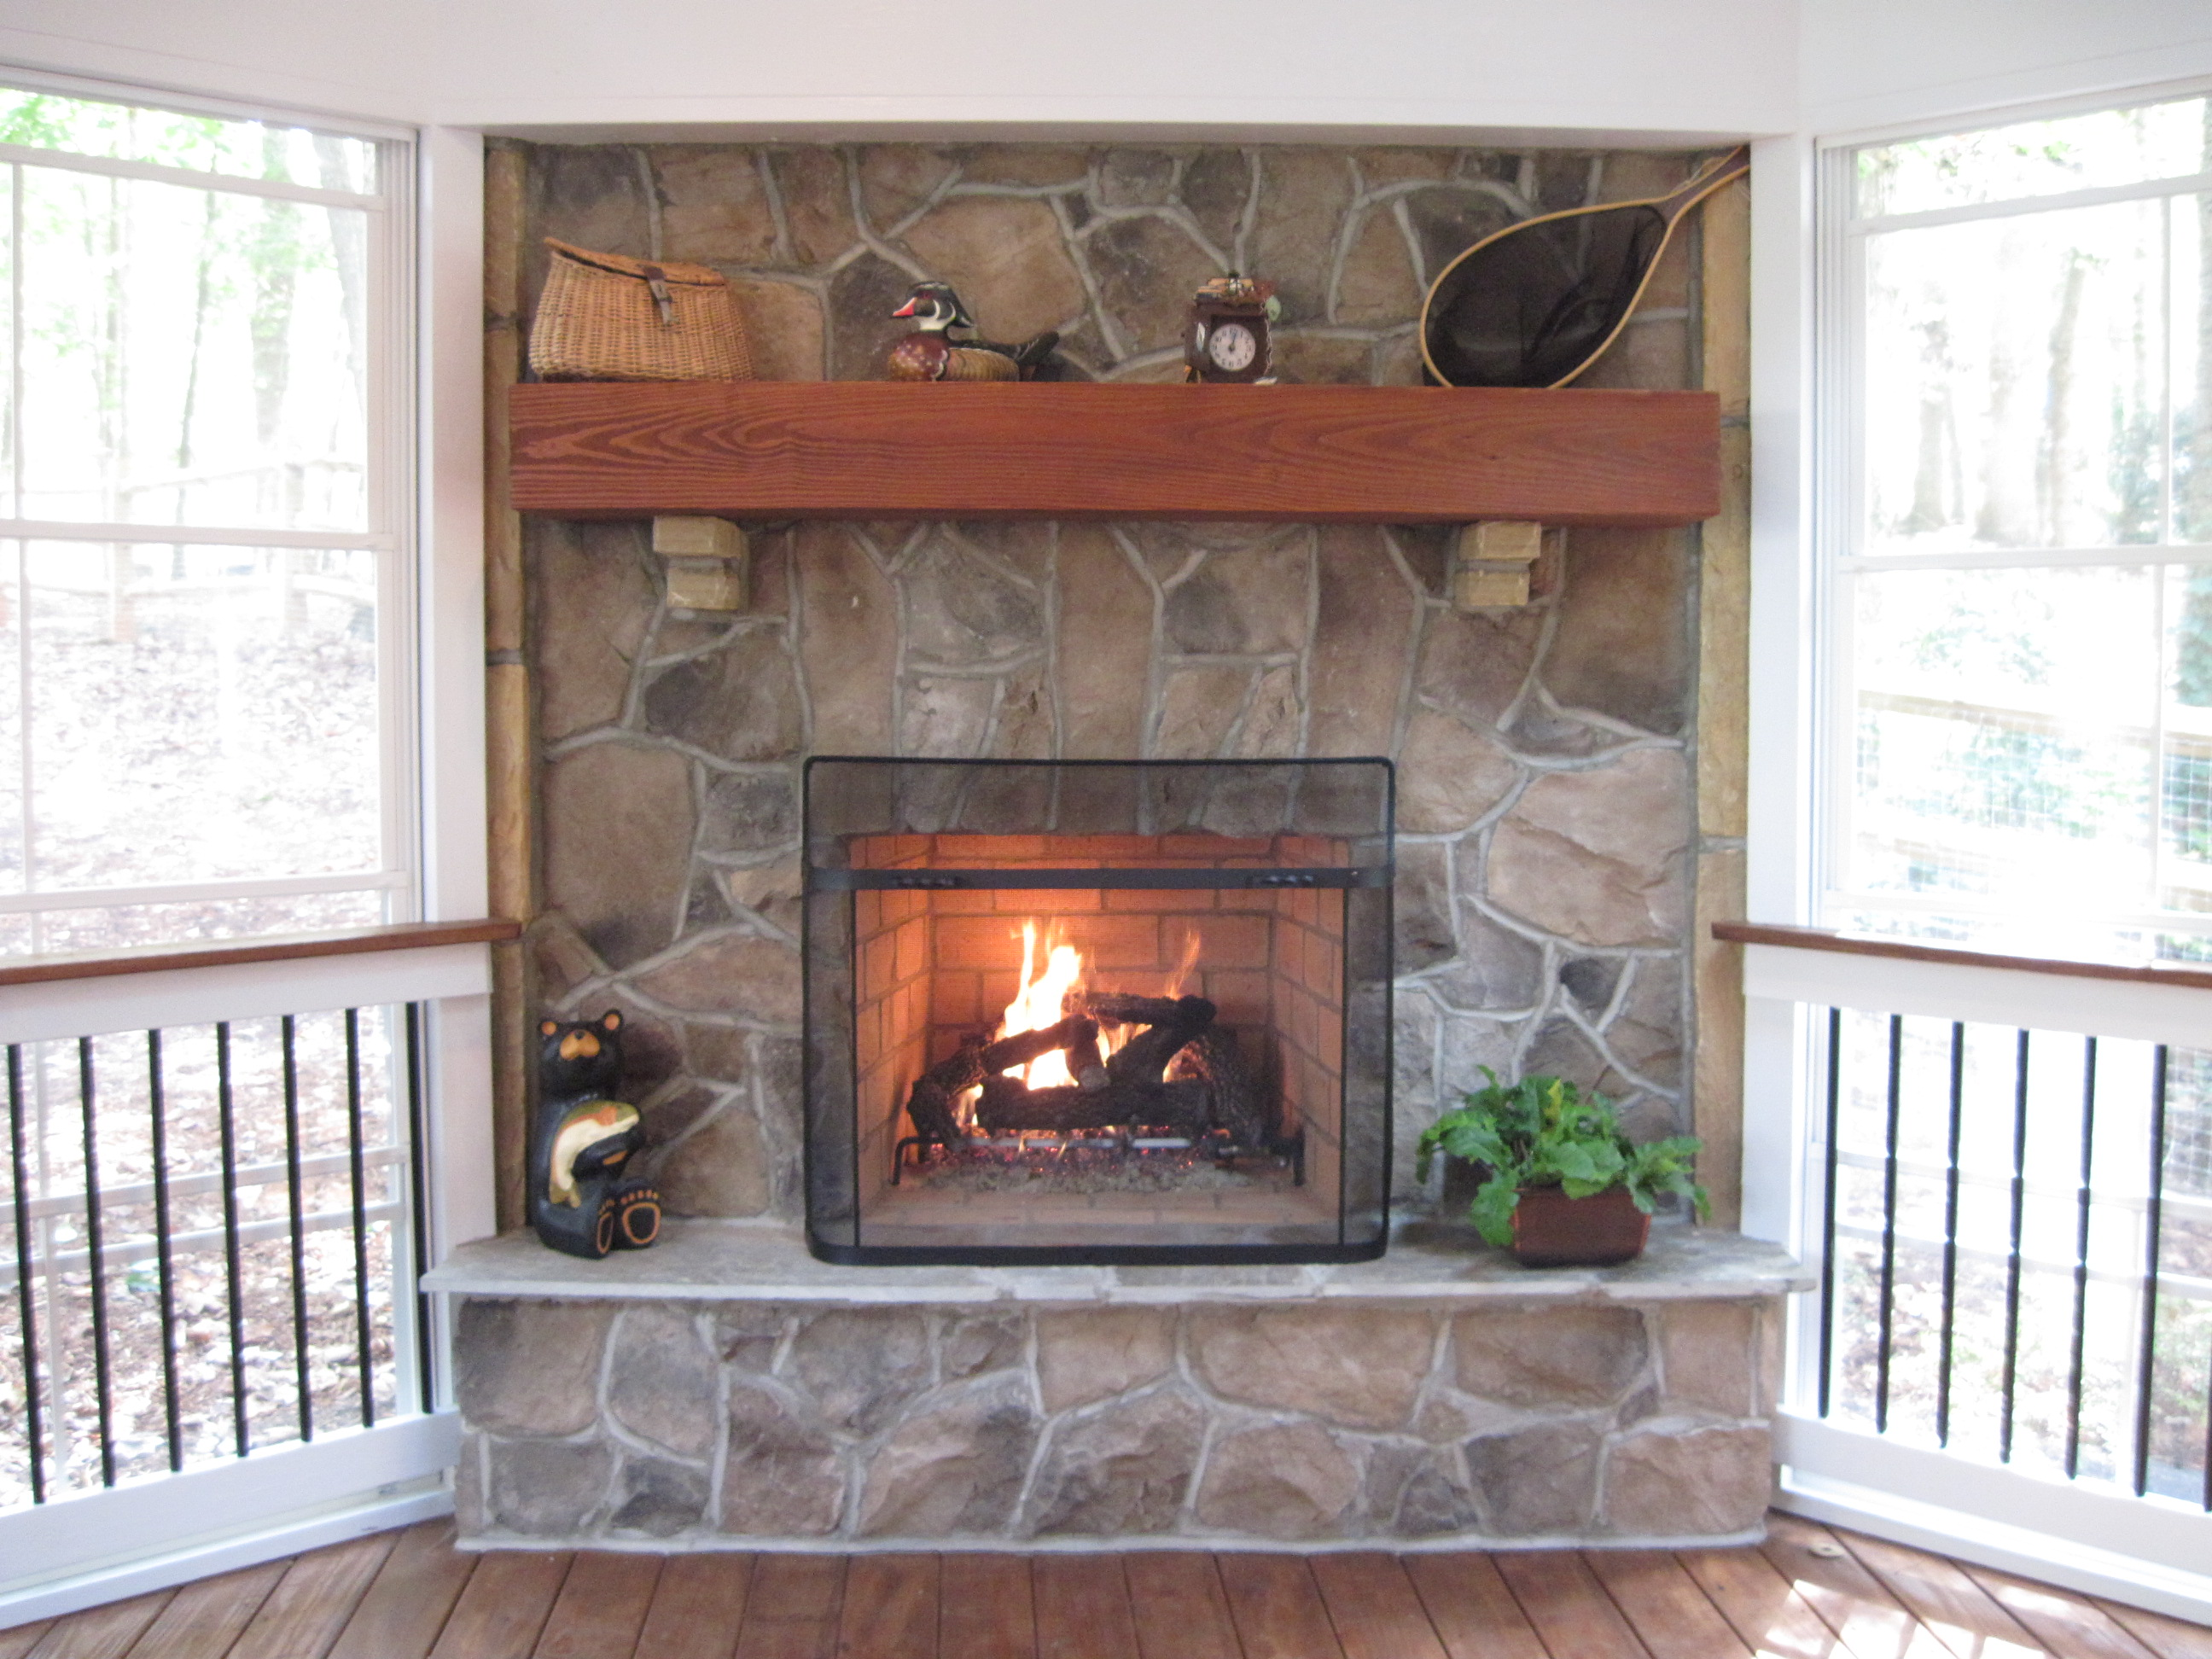 and your outdoor pit chimney cheap fire style creative accessories warm for interior fireplace flue flat decor